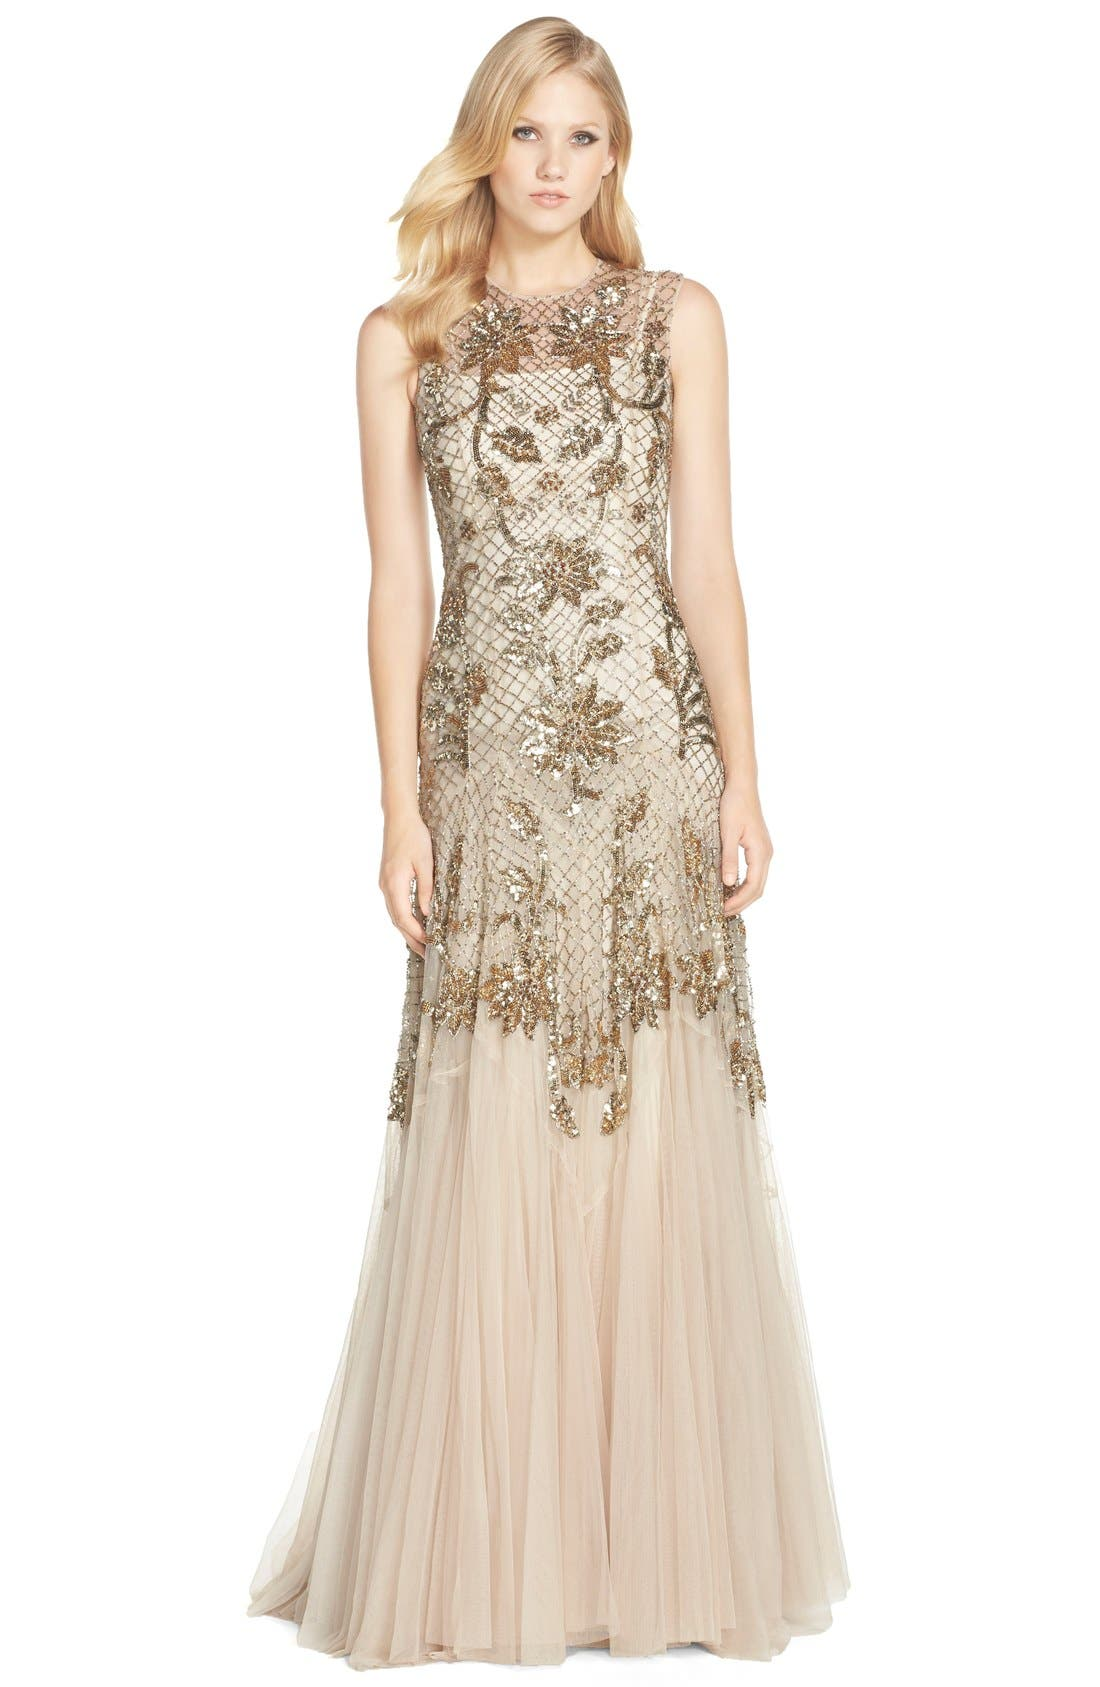 Alternate Image 1 Selected - Needle & Thread Embellished Mesh Gown